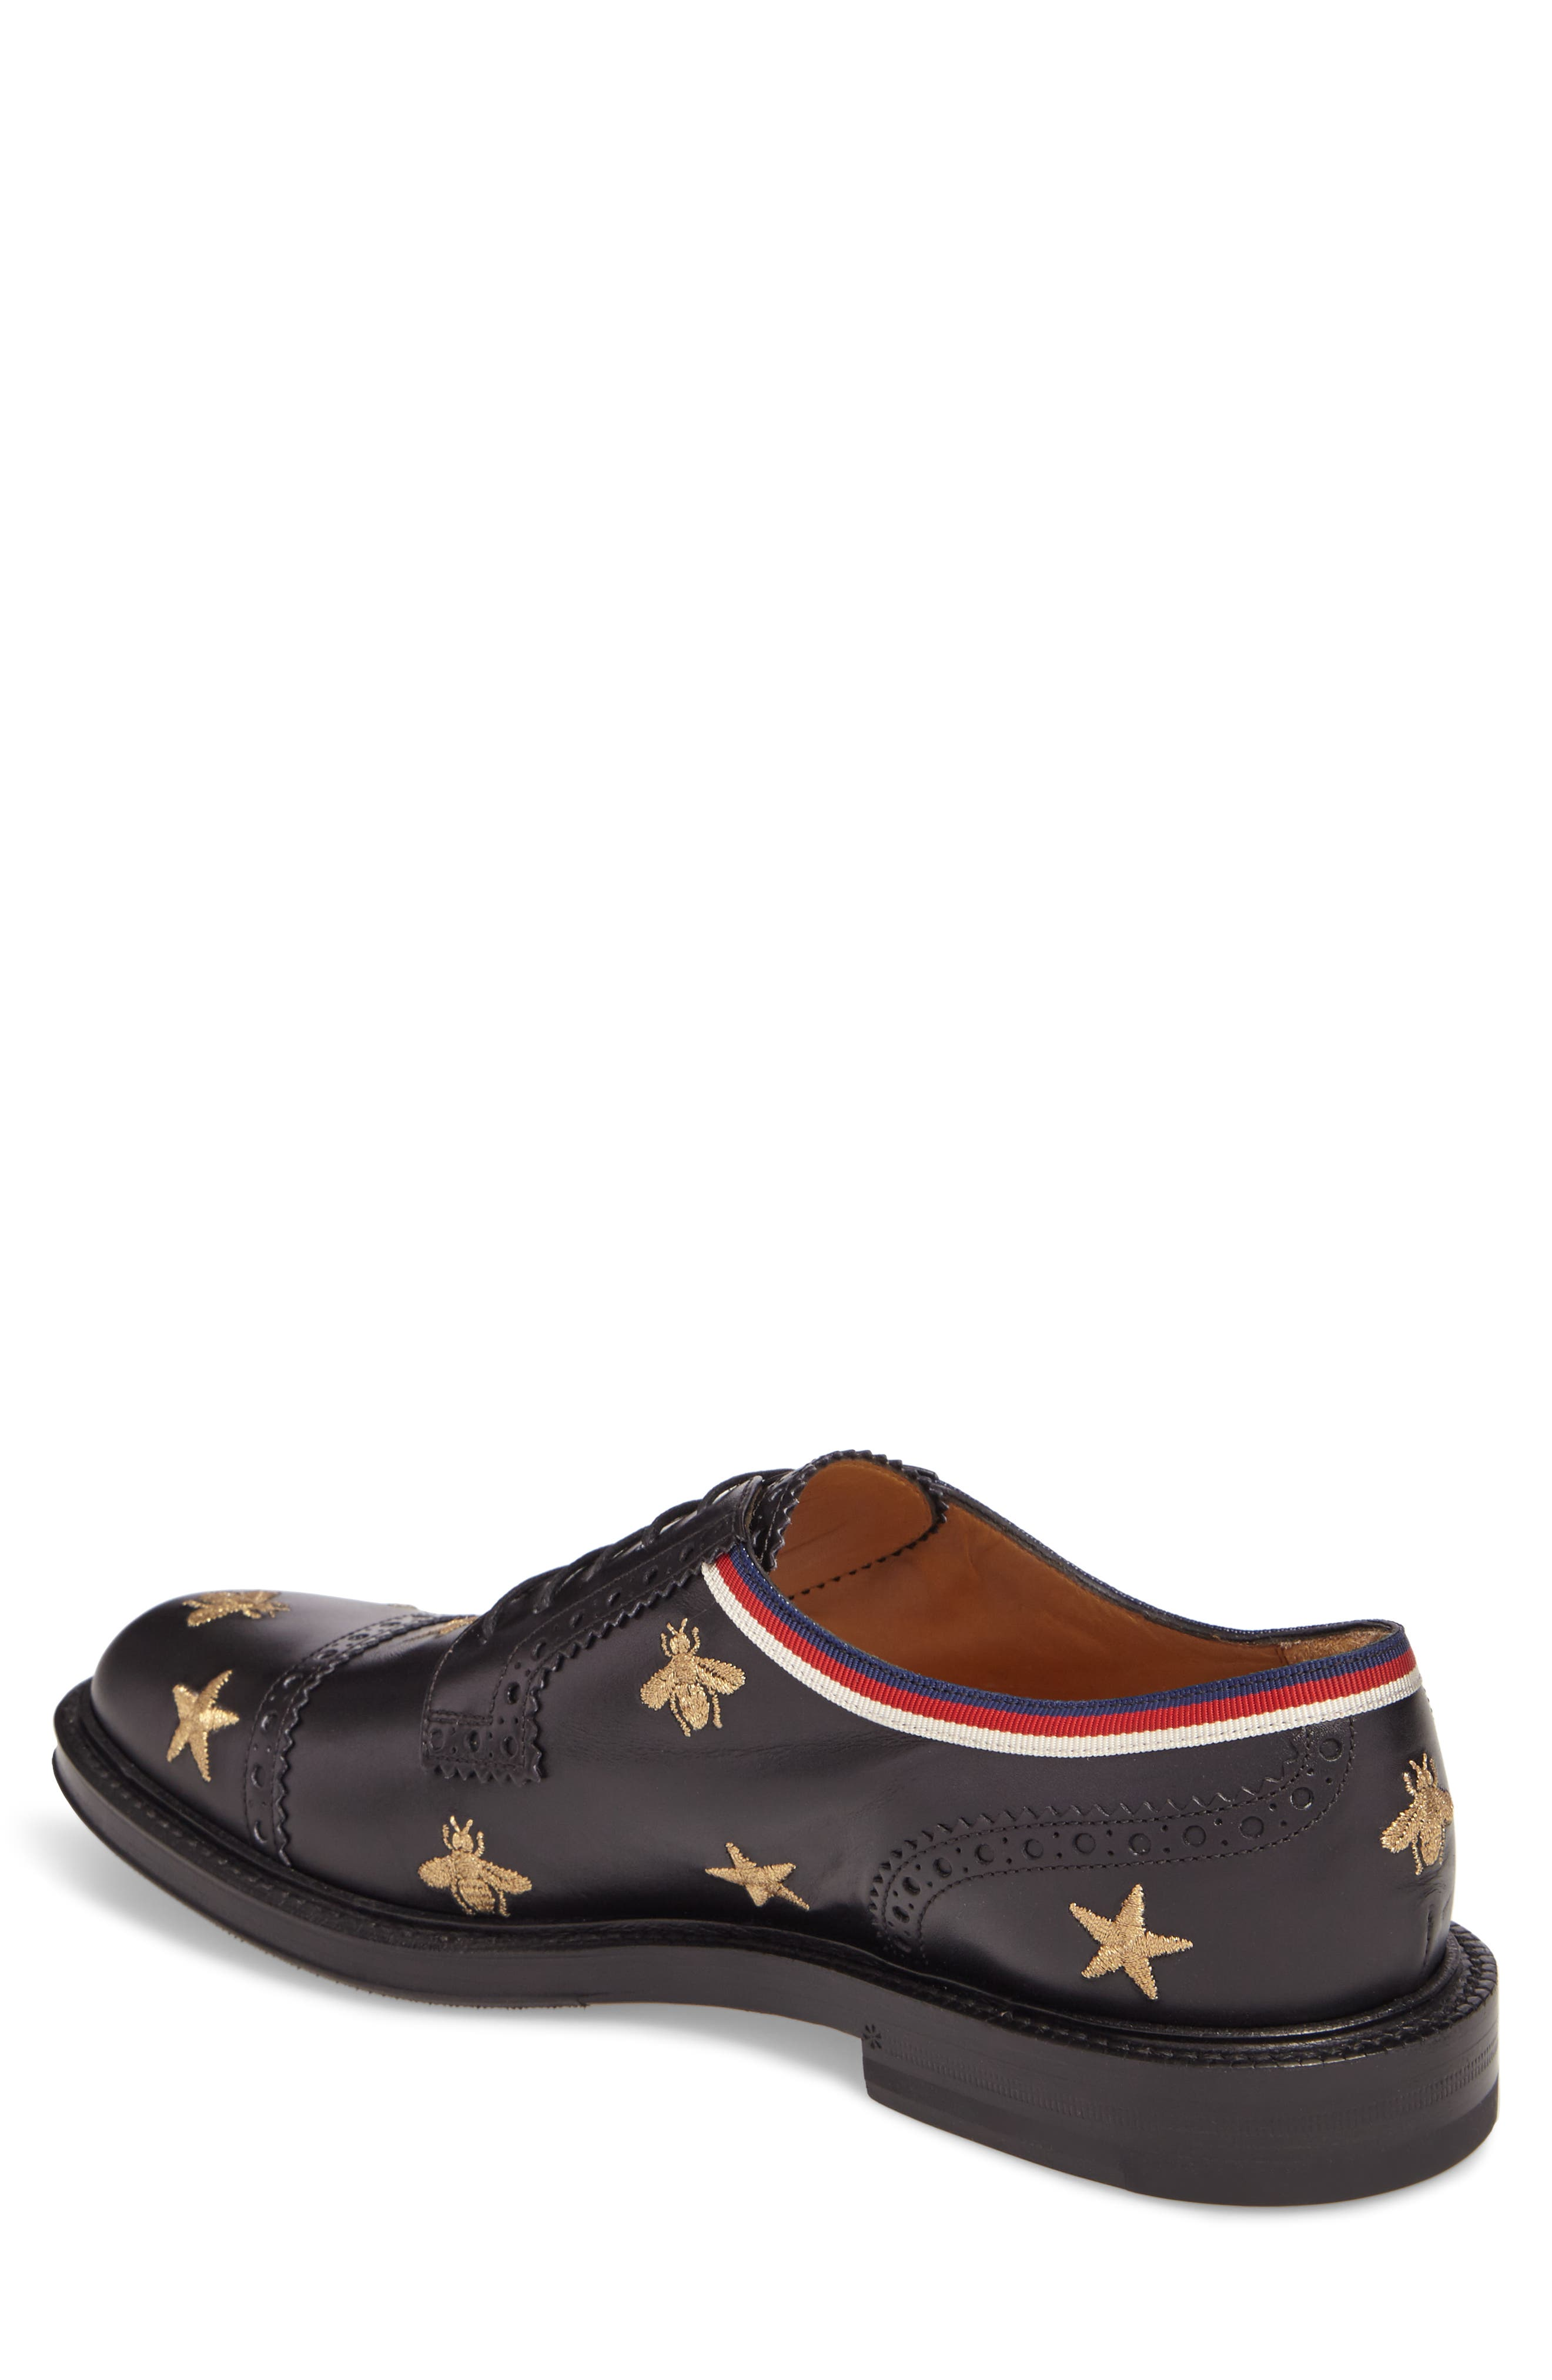 Embroidered Leather Brogue Shoe,                             Alternate thumbnail 2, color,                             009